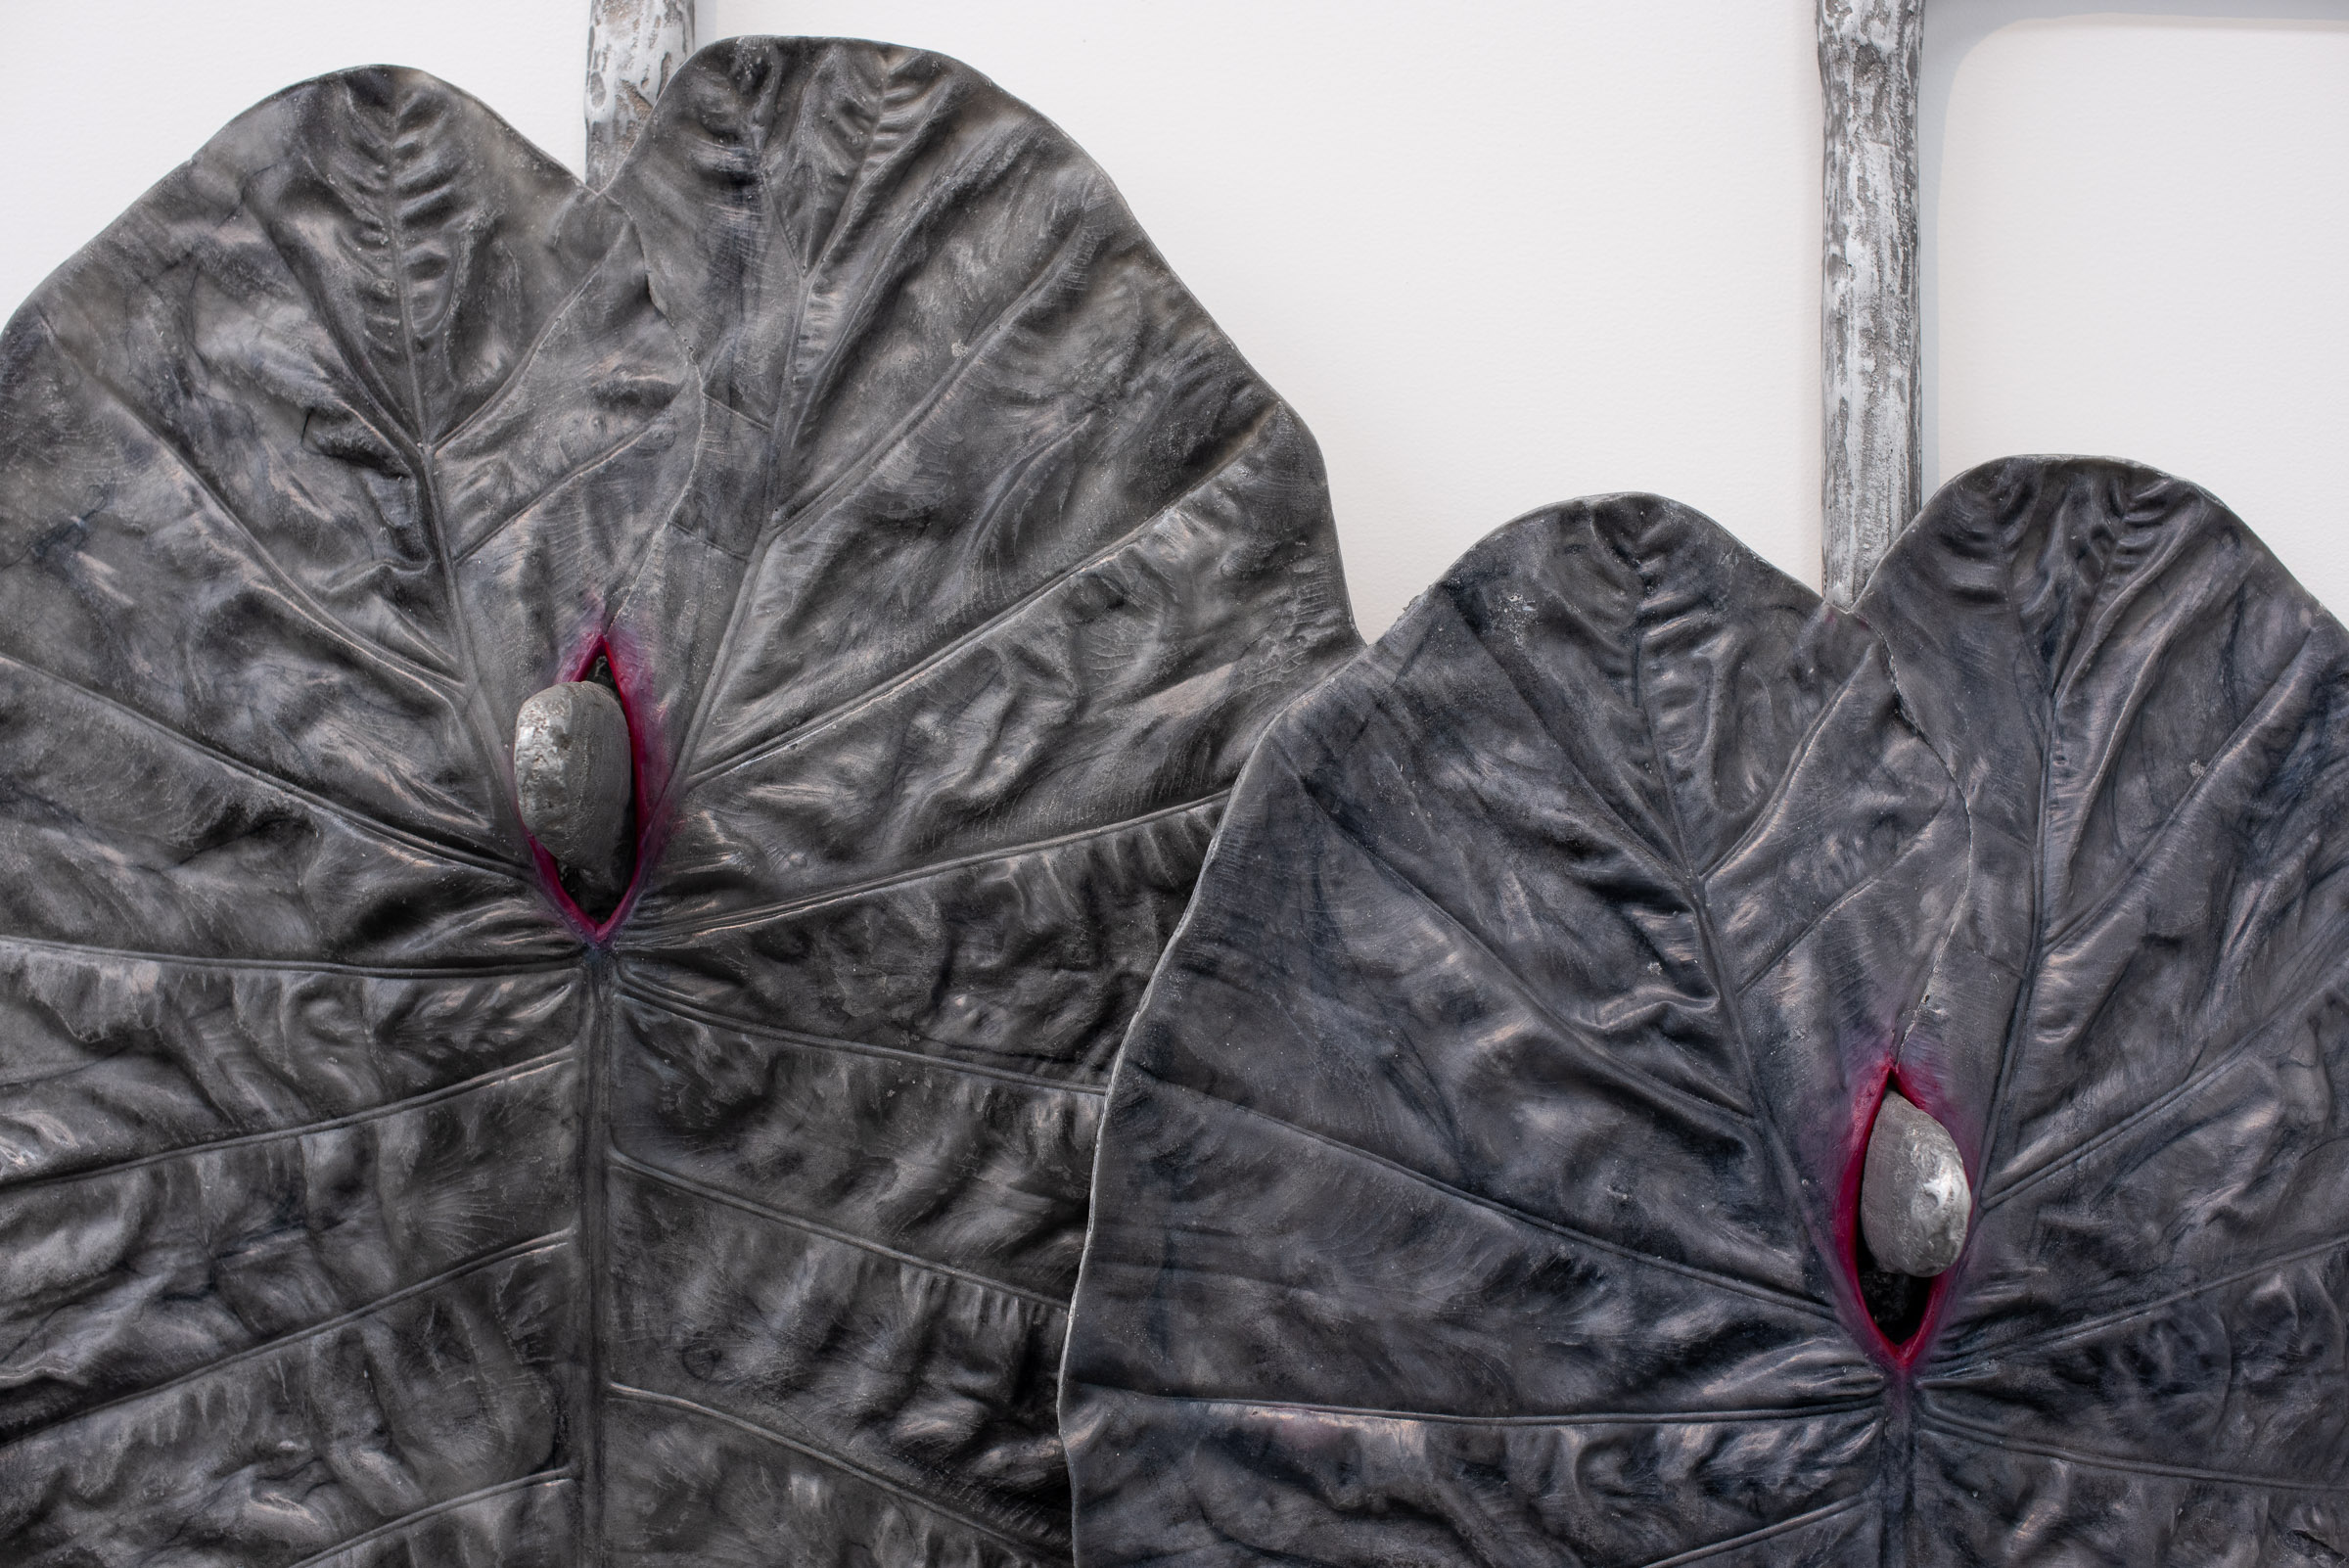 Karen Lofgren Detail:  Like This I See You in Dreams (como lo cura, locura),  2018 polyurethane castings of Amazonian medical plant leaves (la pataquina negra), aluminum powder, embedded wool, fiberglass, on cast aluminum 52 x 40 x 9 in (132.1 x 101.6 x 22.9 cm)